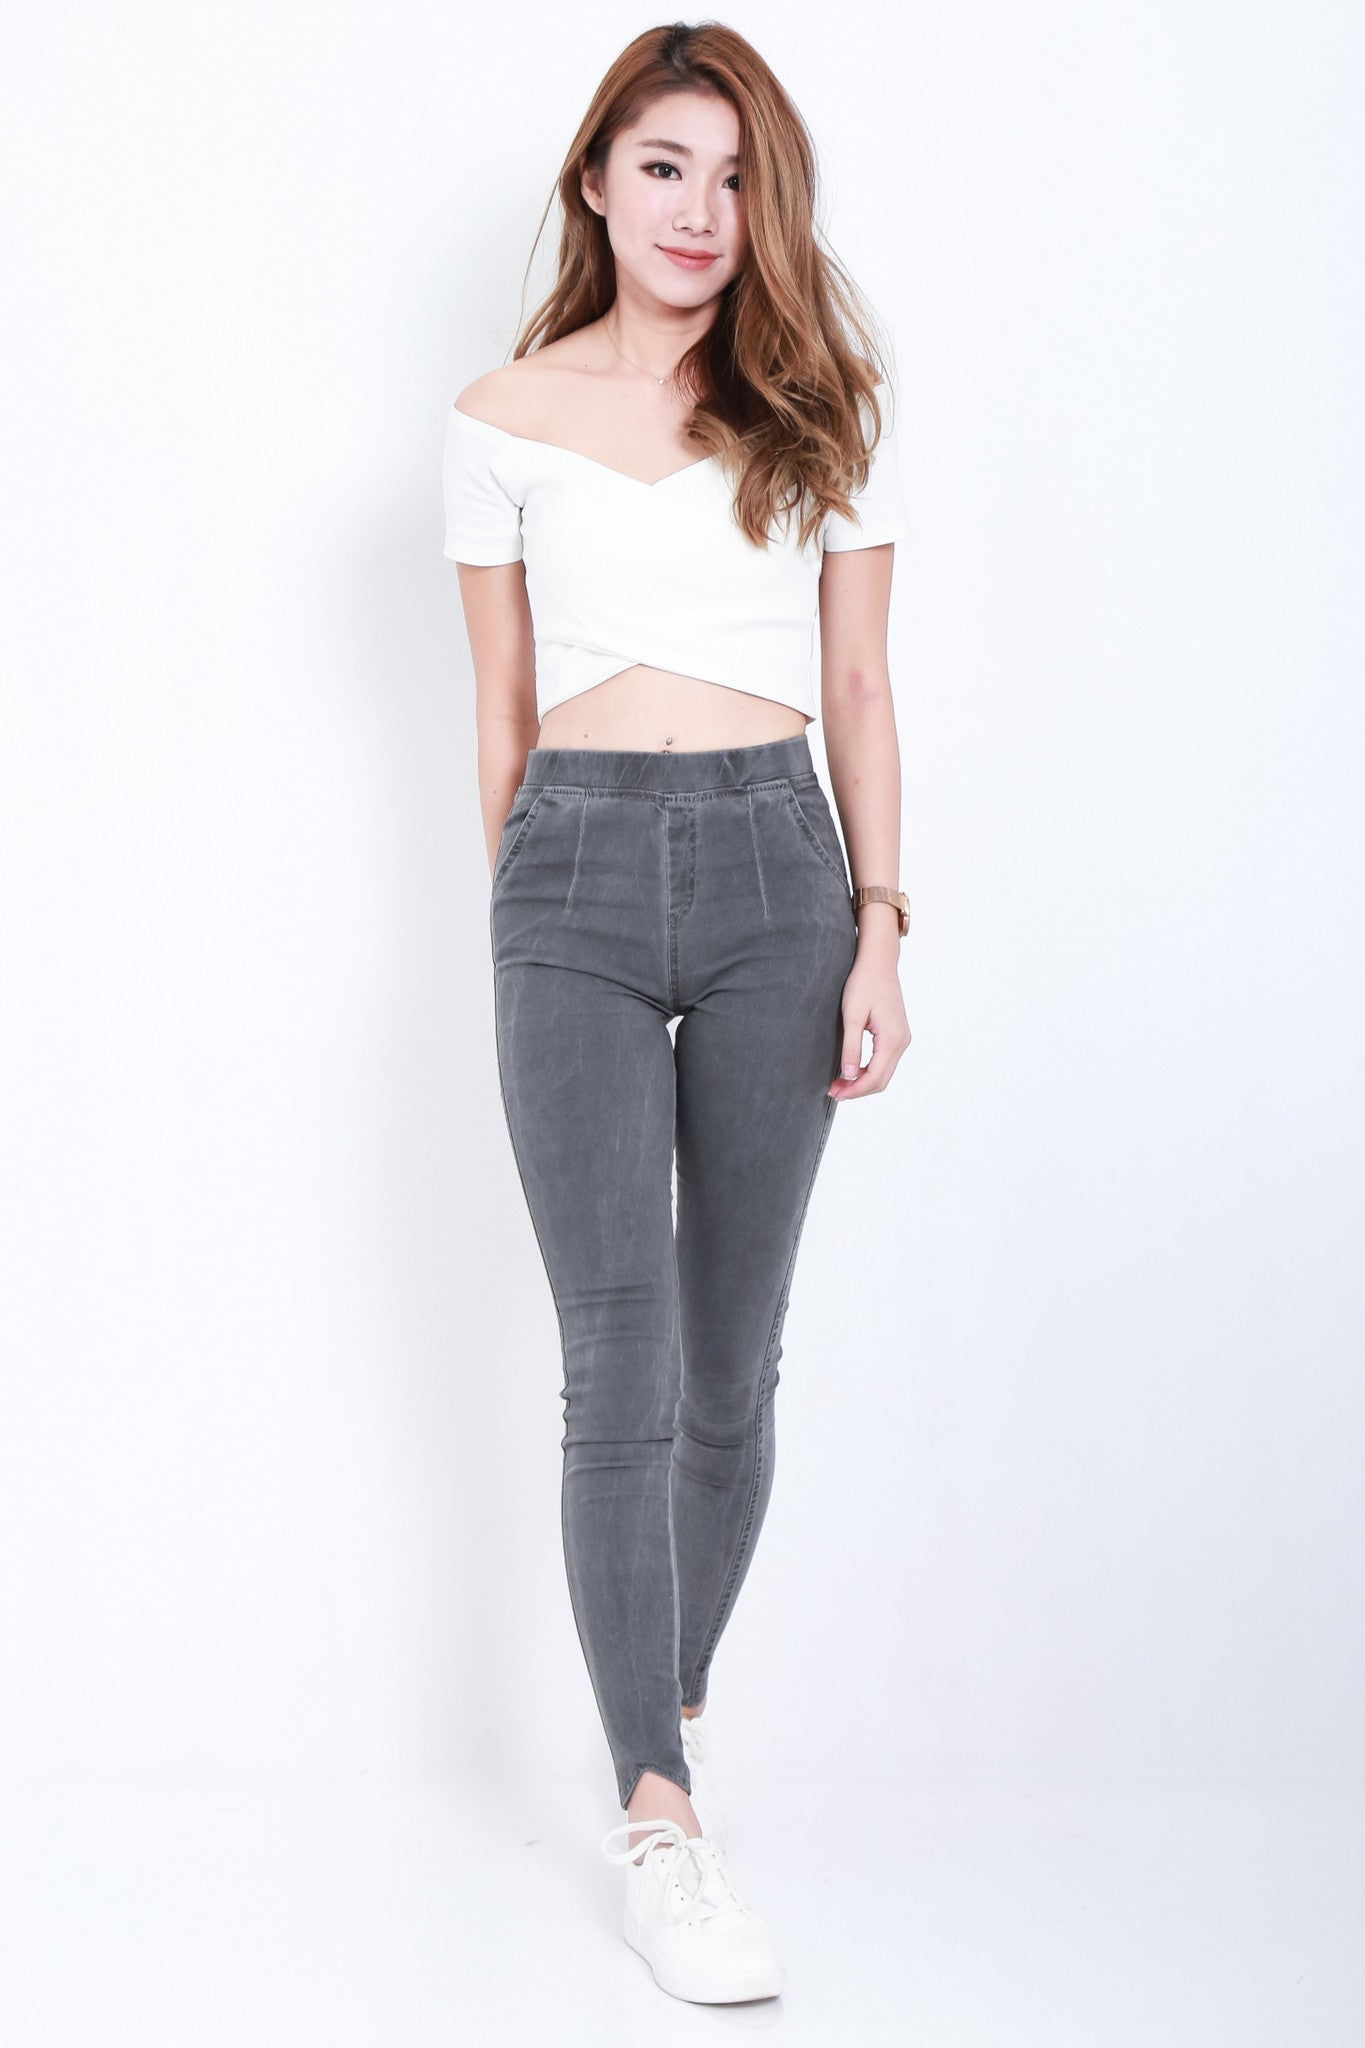 CLASSIC STRETCHY JEGGINGS IN GREY - TOPAZETTE